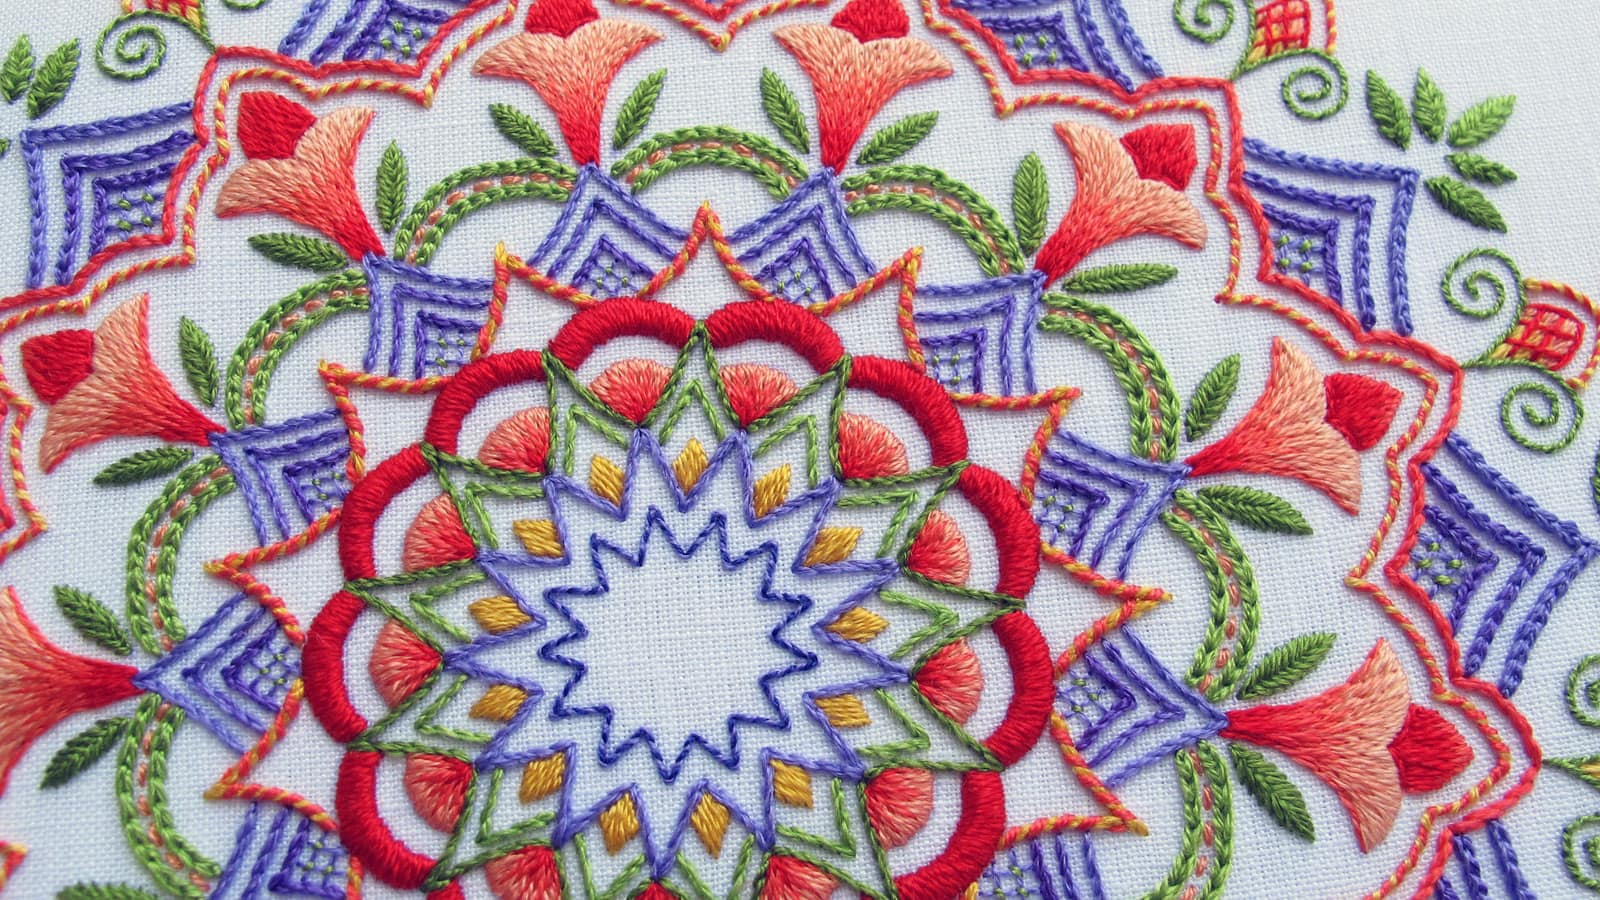 How To Make Your Own Embroidery Pattern Needlenthread Tips Tricks And Great Resources For Hand Embroidery